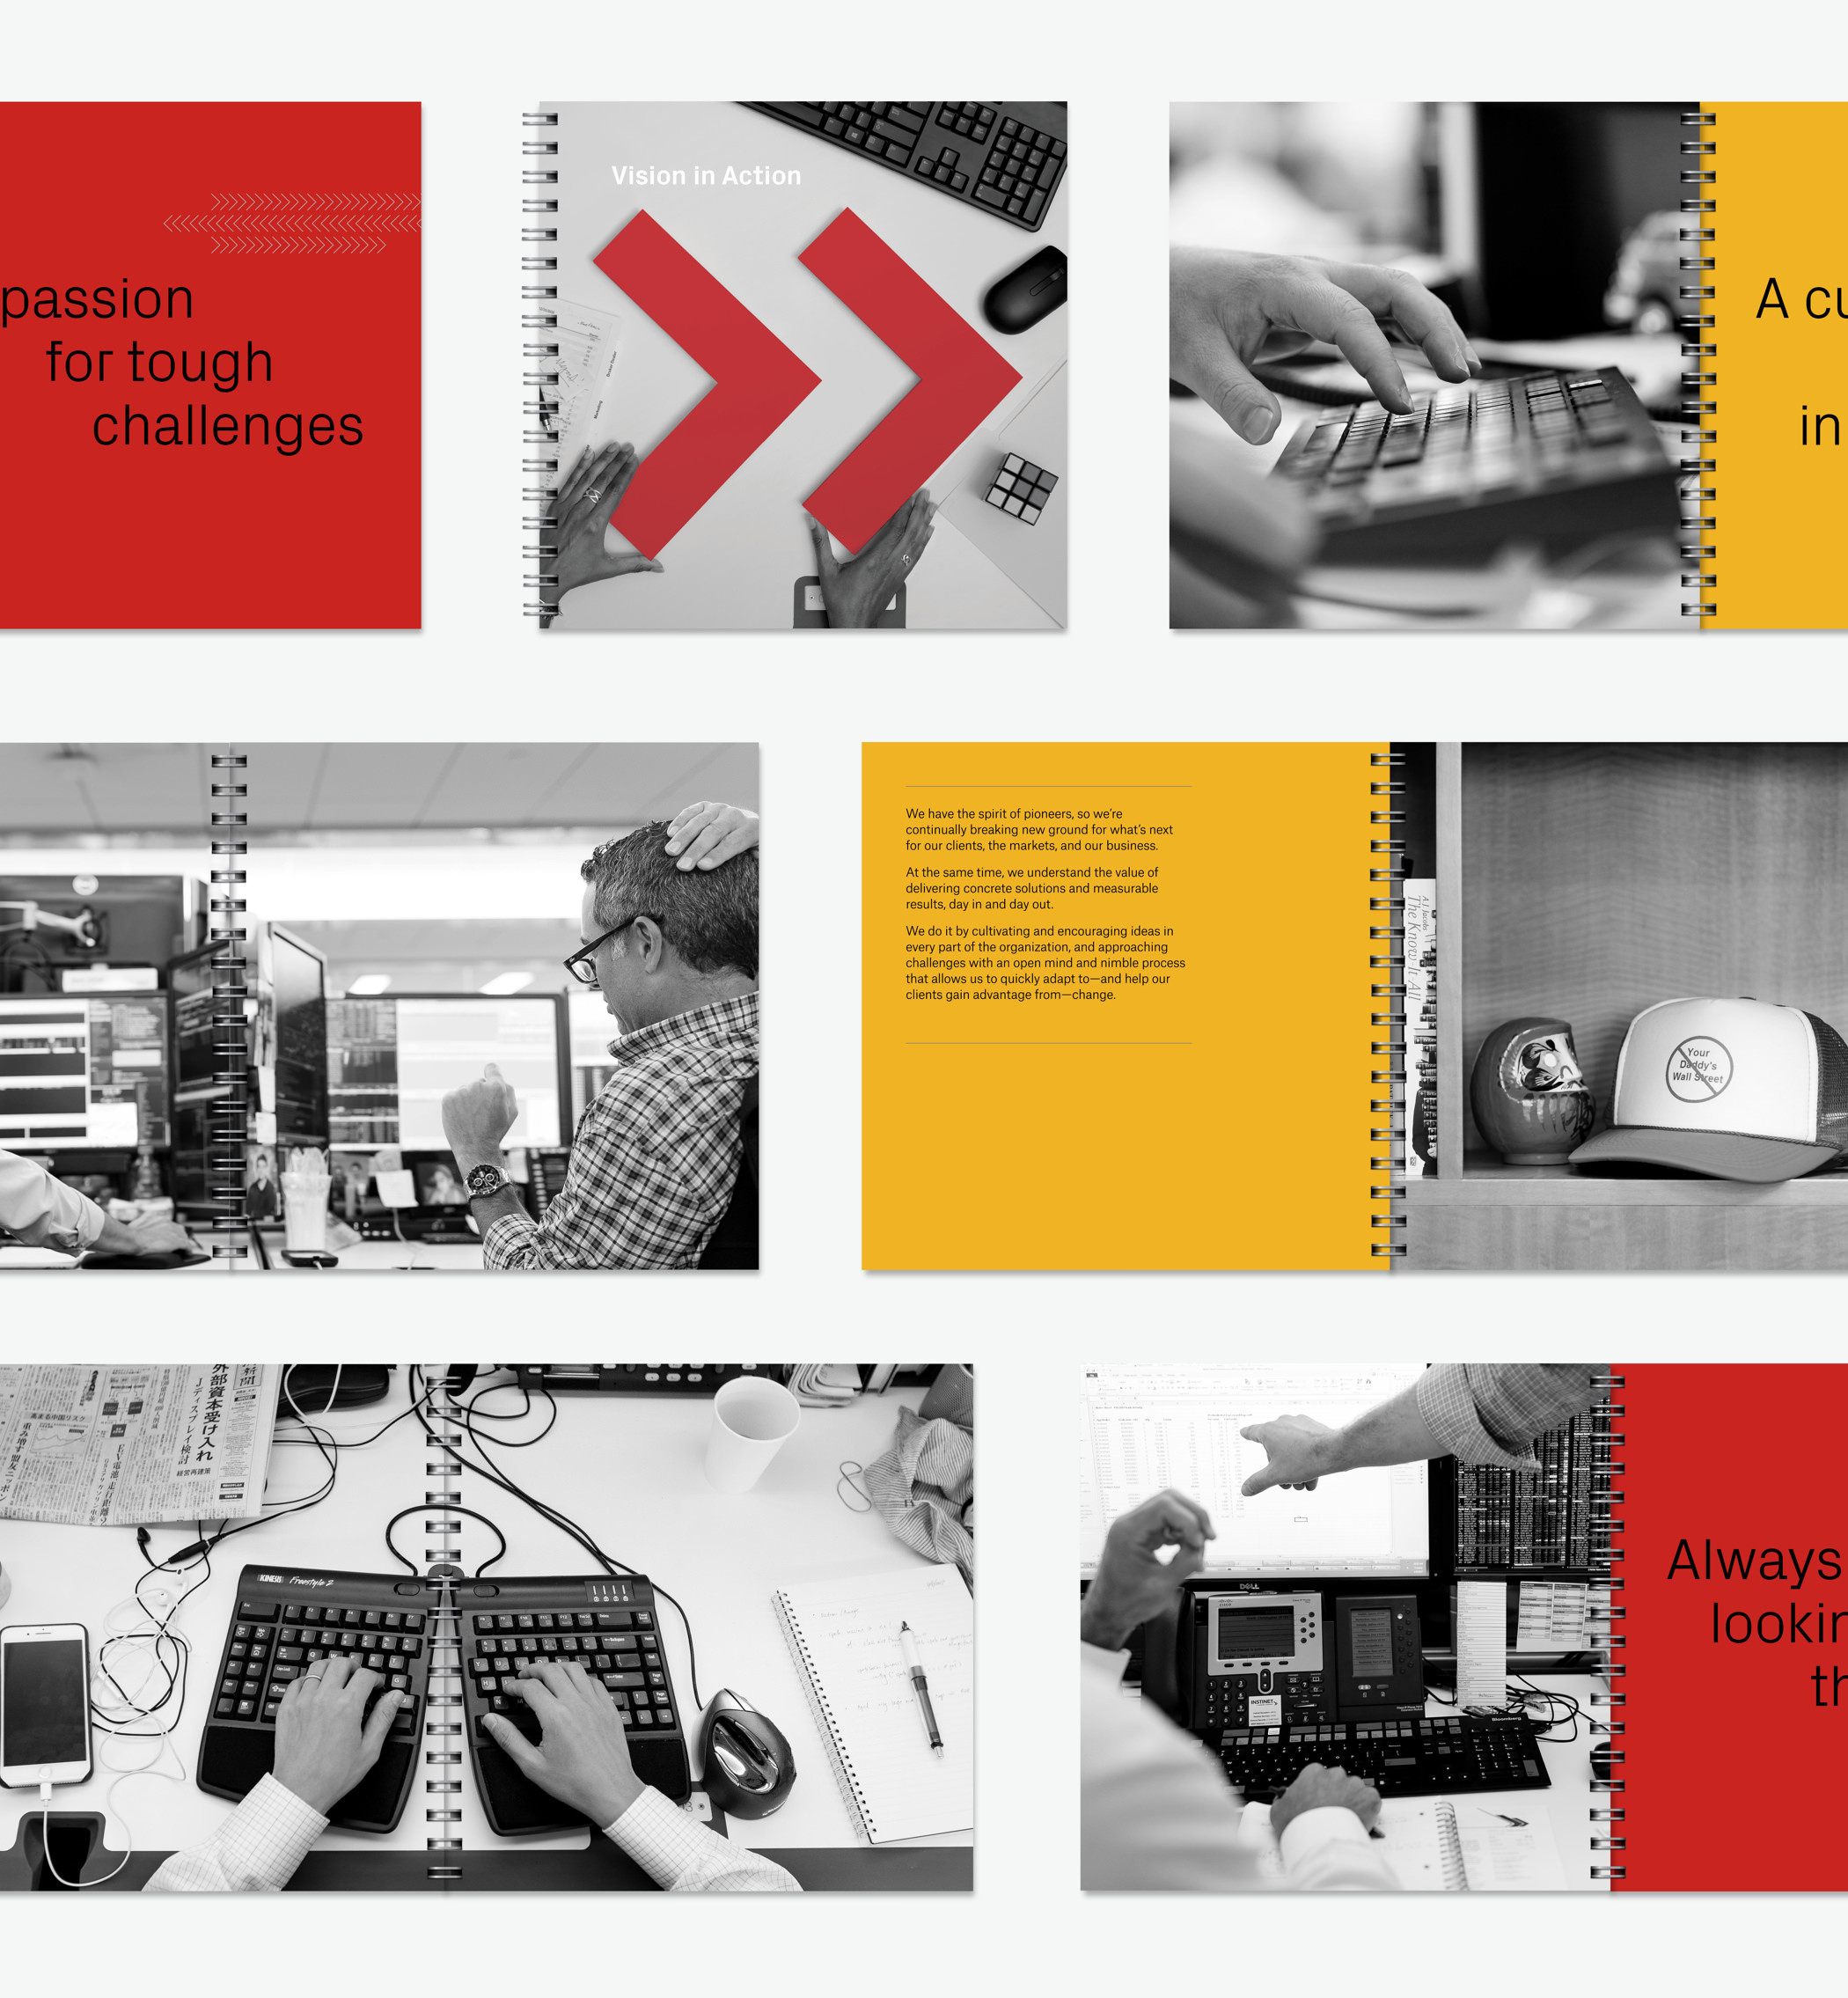 A variety of pages from the Instinet Brand Vision book showing red and yellow pages with type and black and white photos of the Instinet office environment.